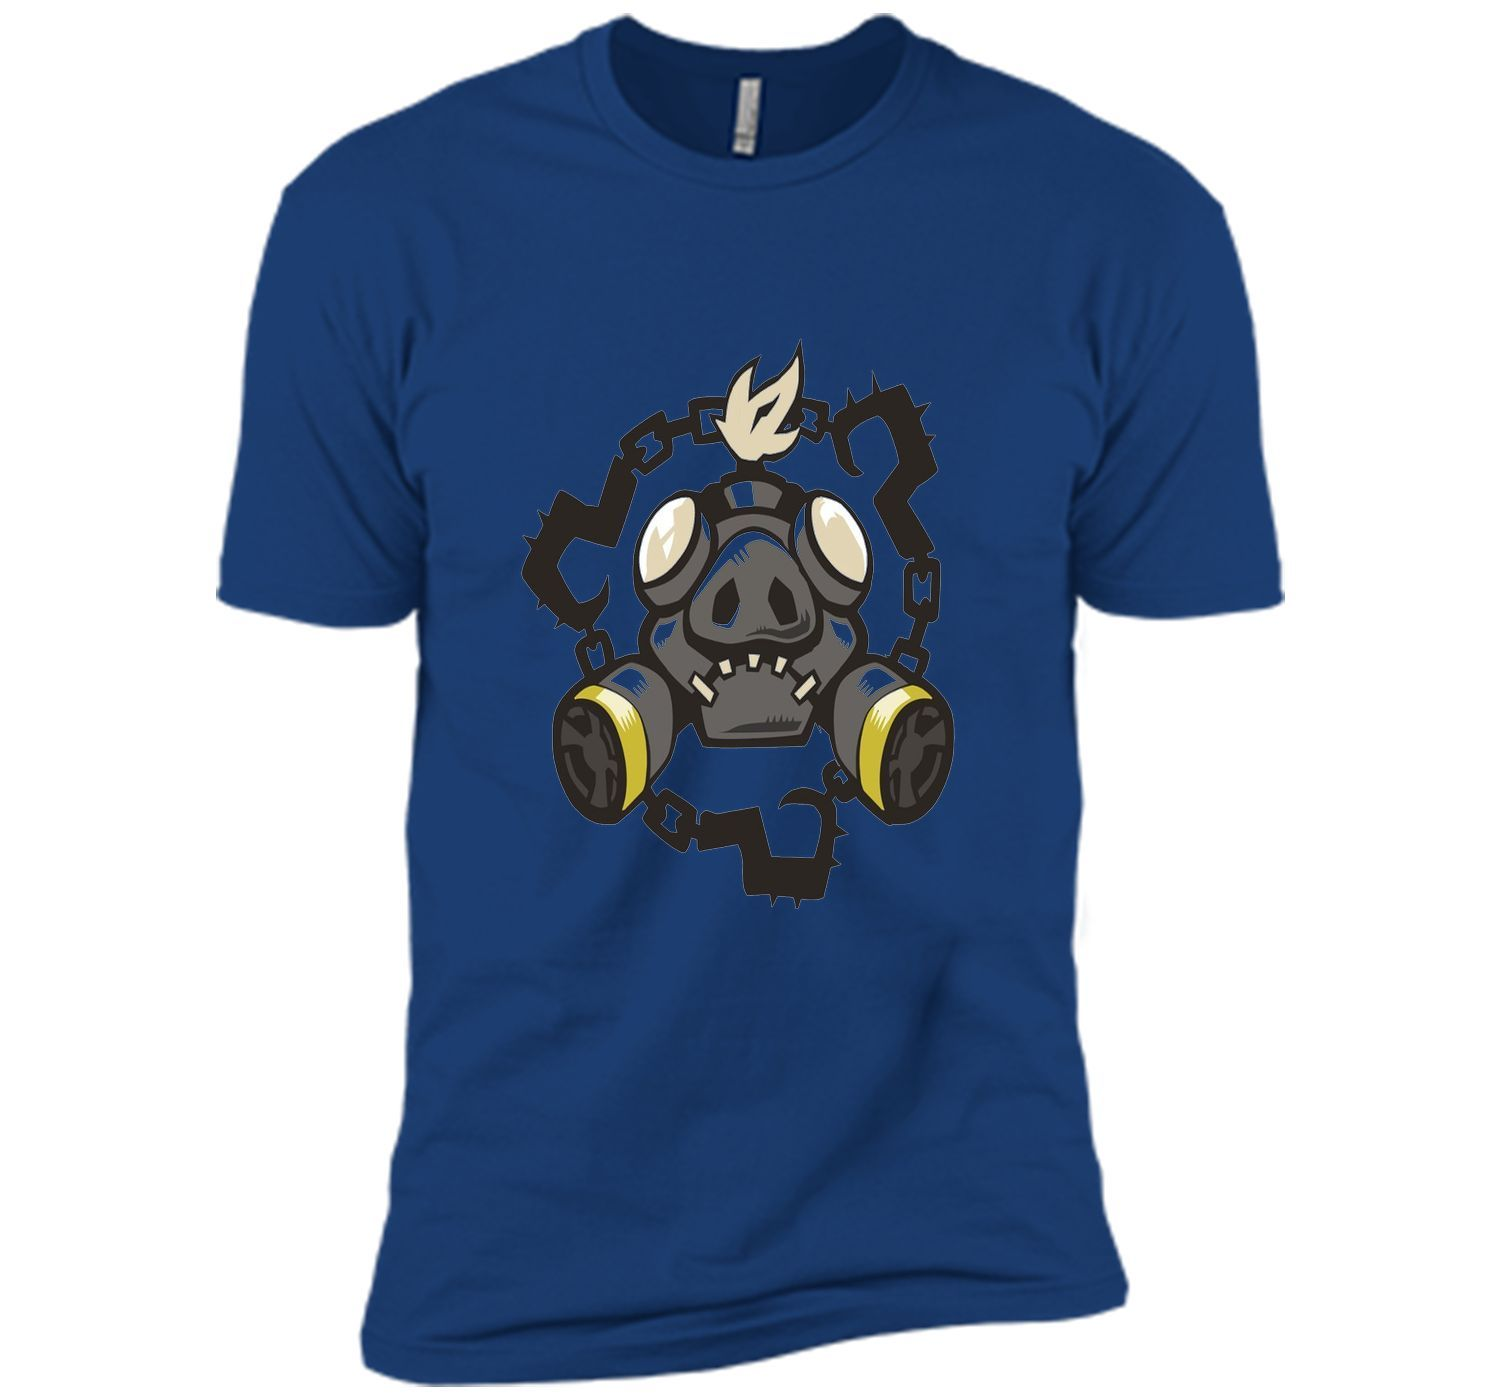 Overwatch Roadhog Chains Spray Tee Shirt